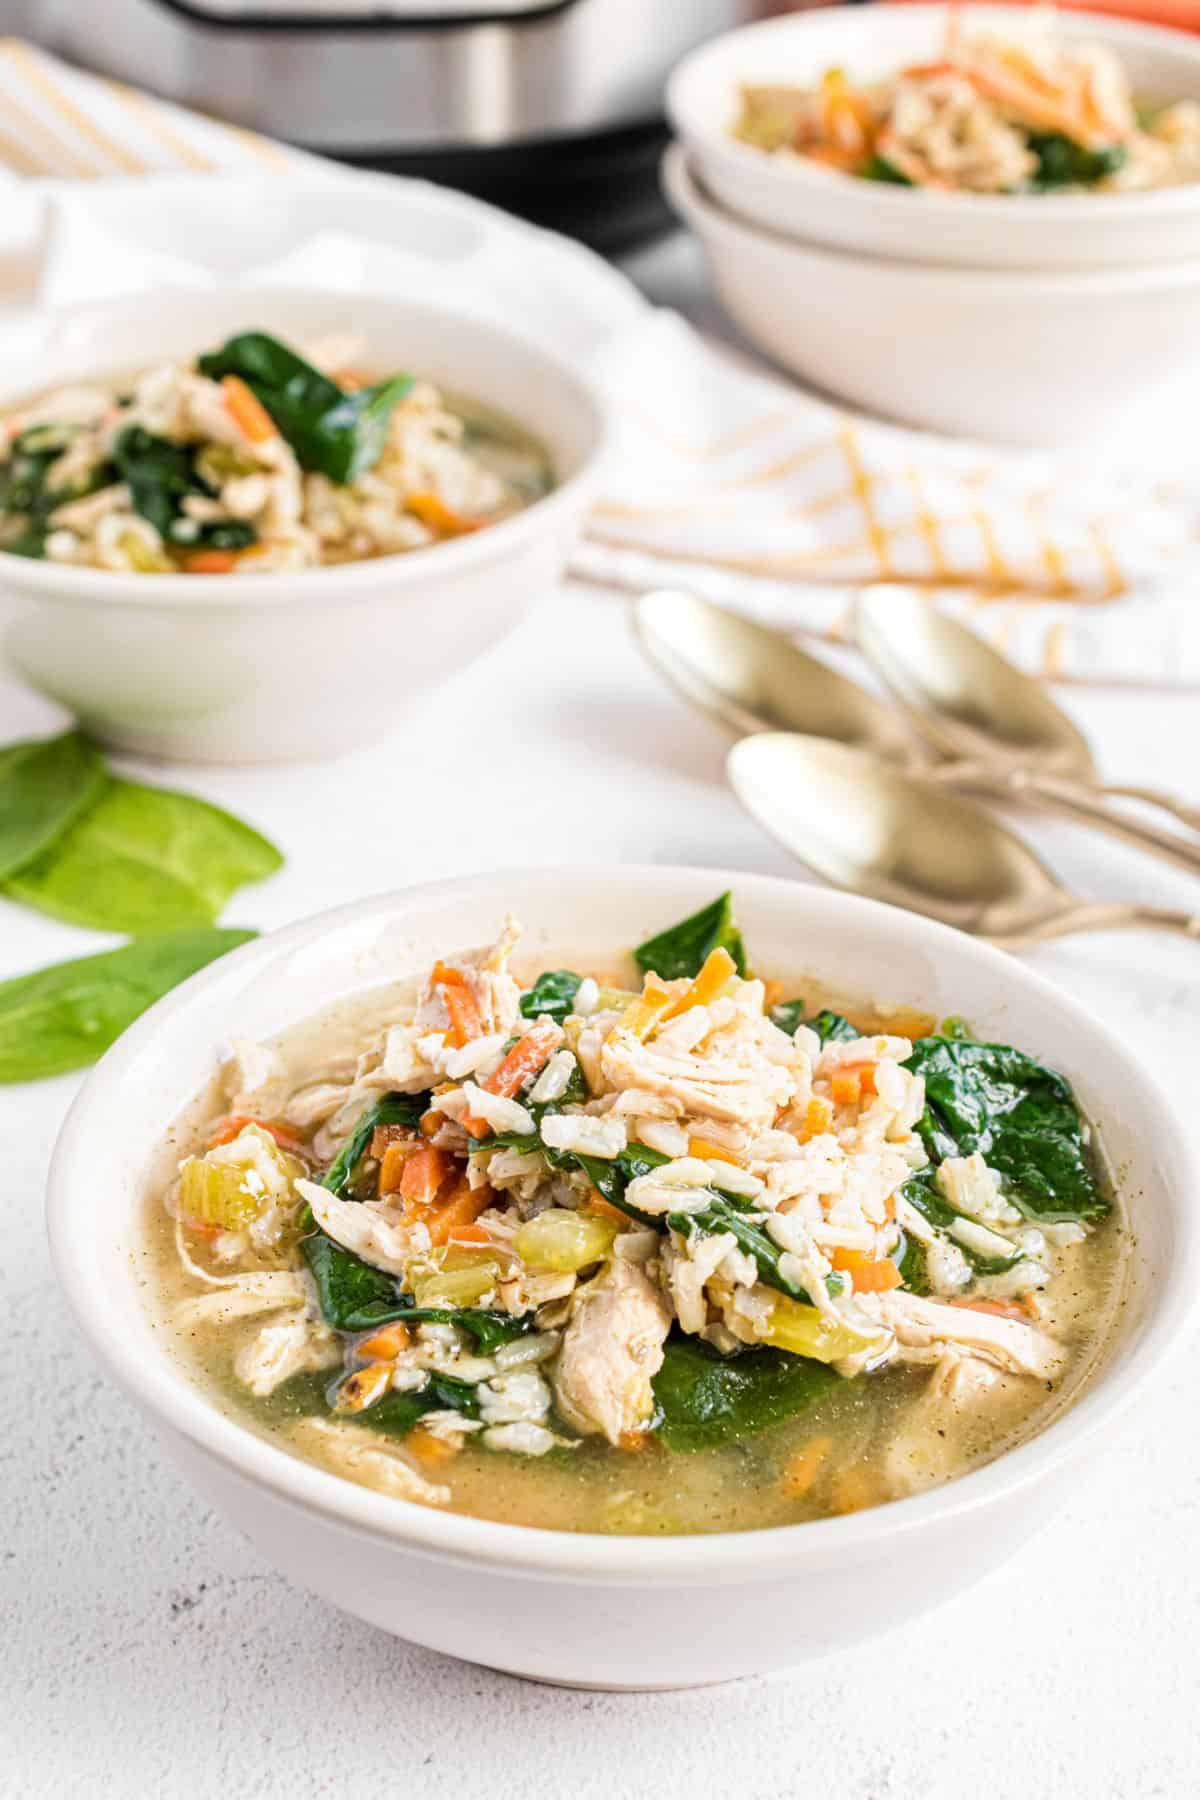 Soup bowl with chicken and rice soup with spinach.